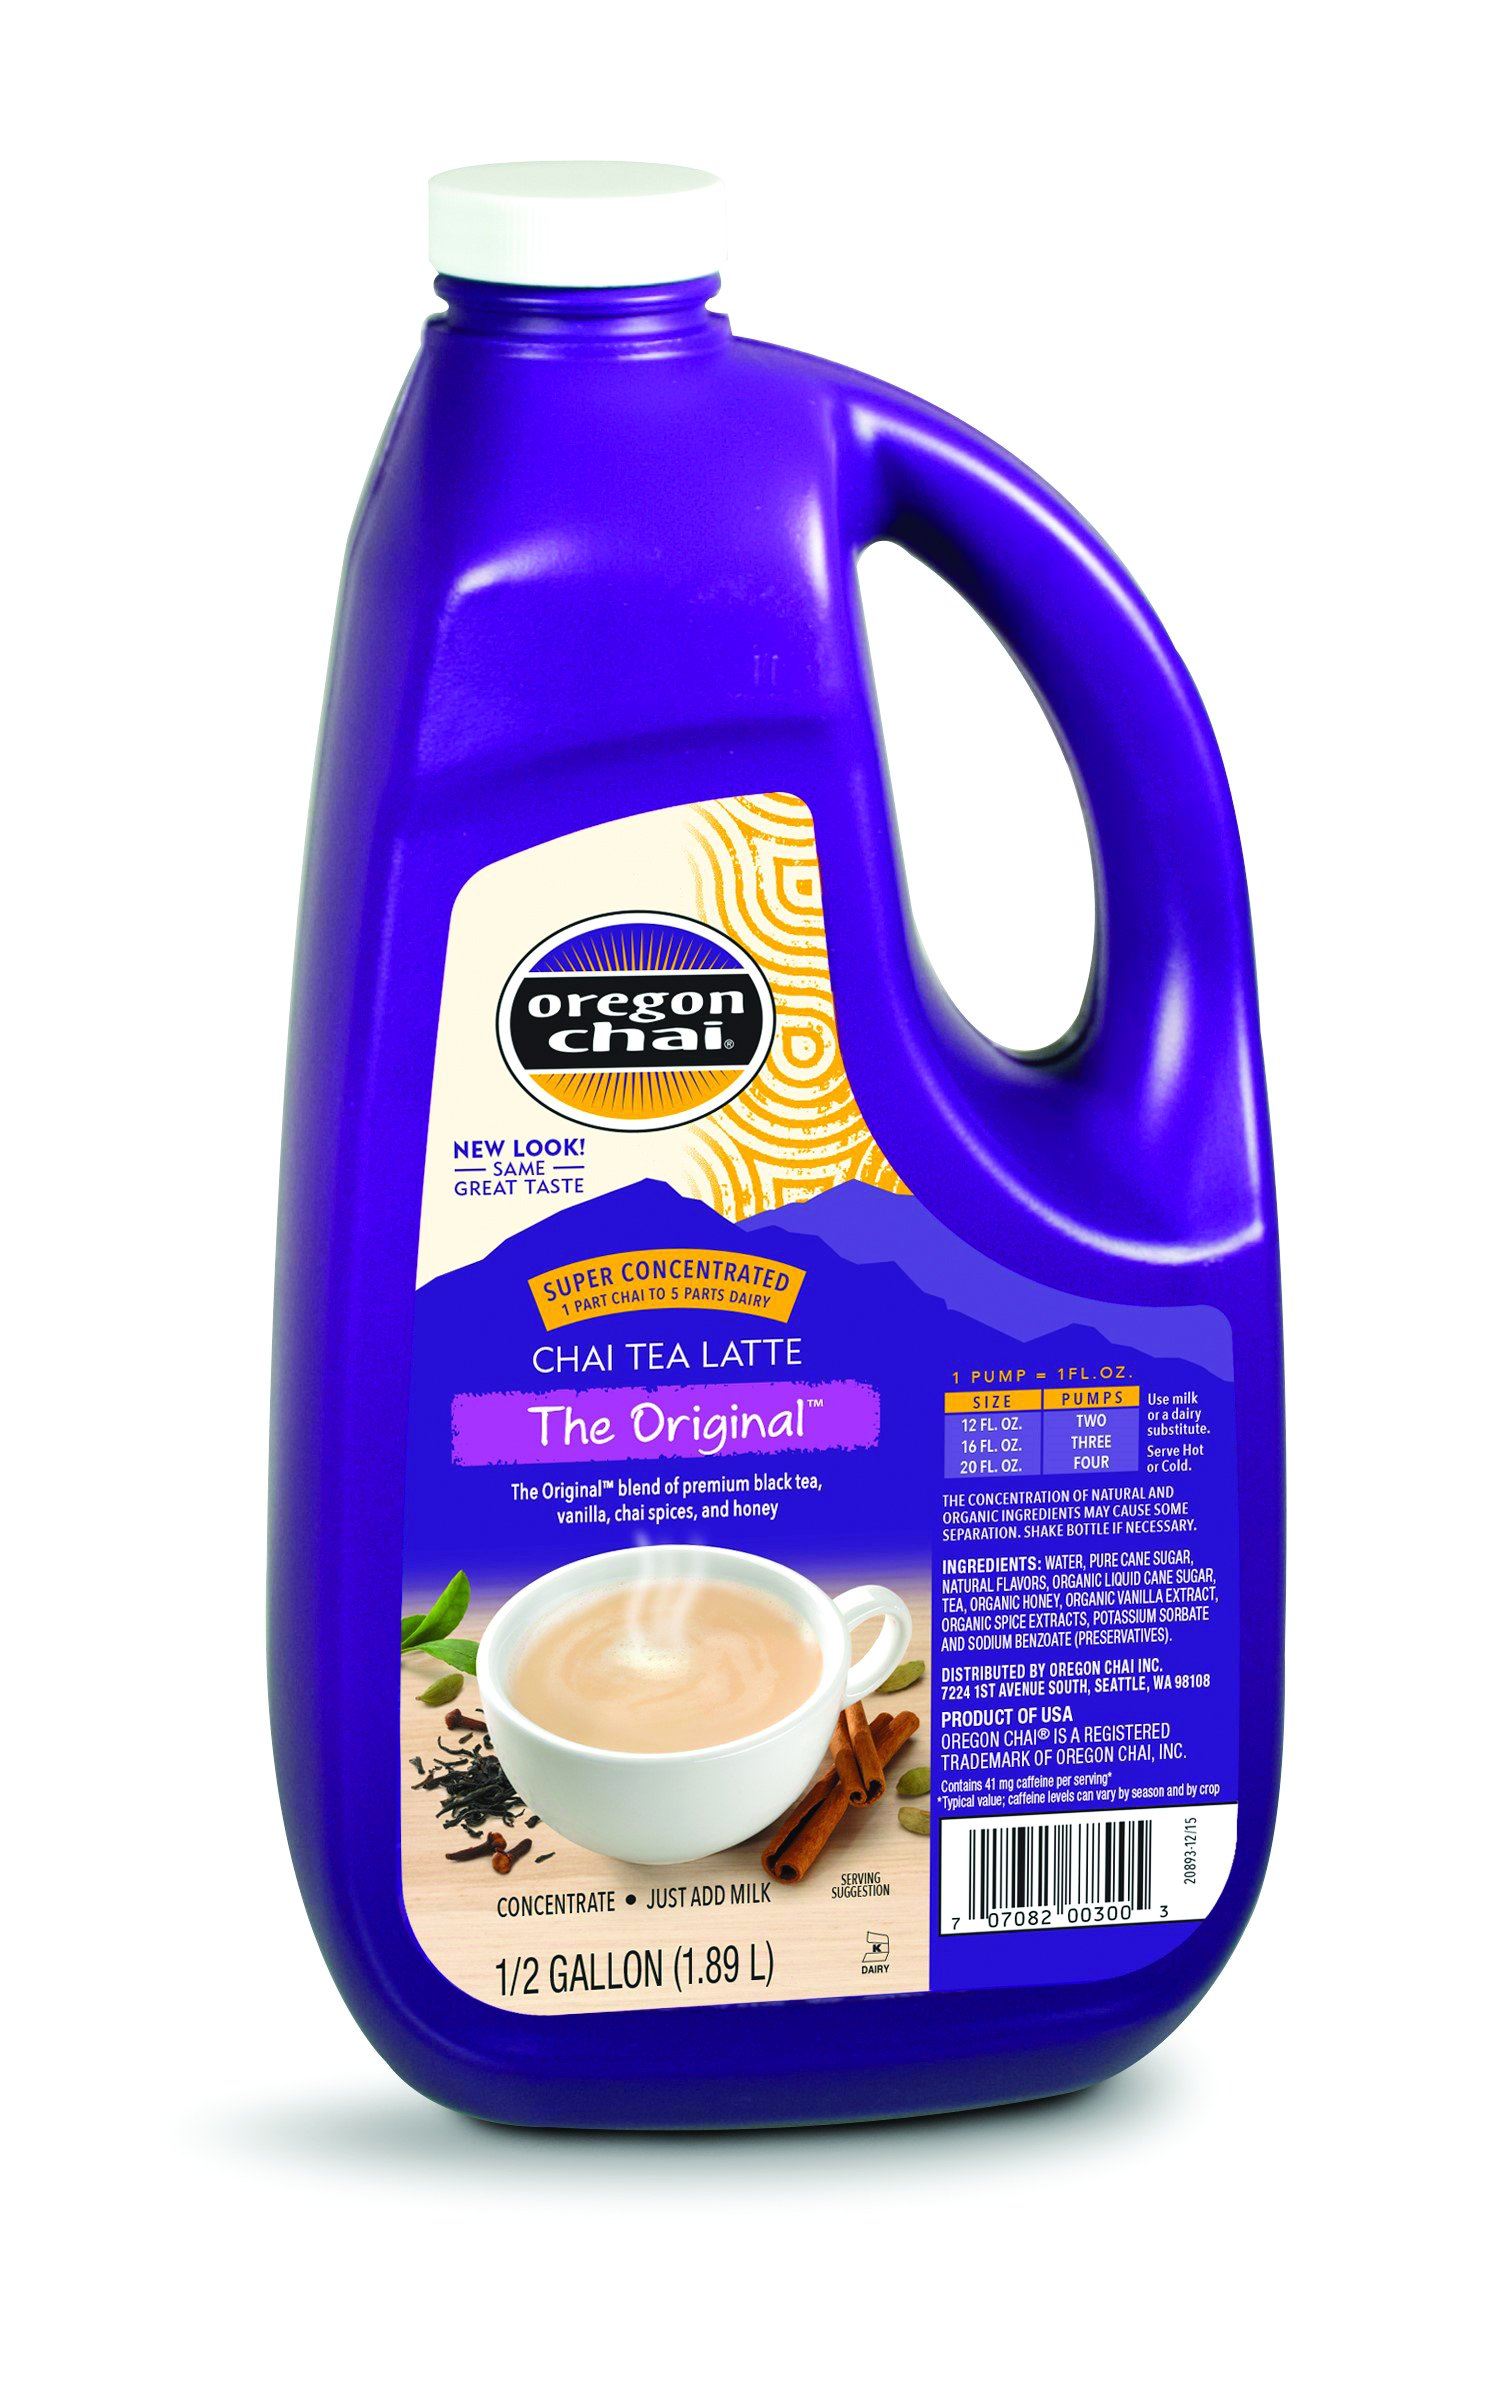 Oregon Chai Original Chai Tea Latte Concentrate, 64-Ounce Jugs (Pack of 4)